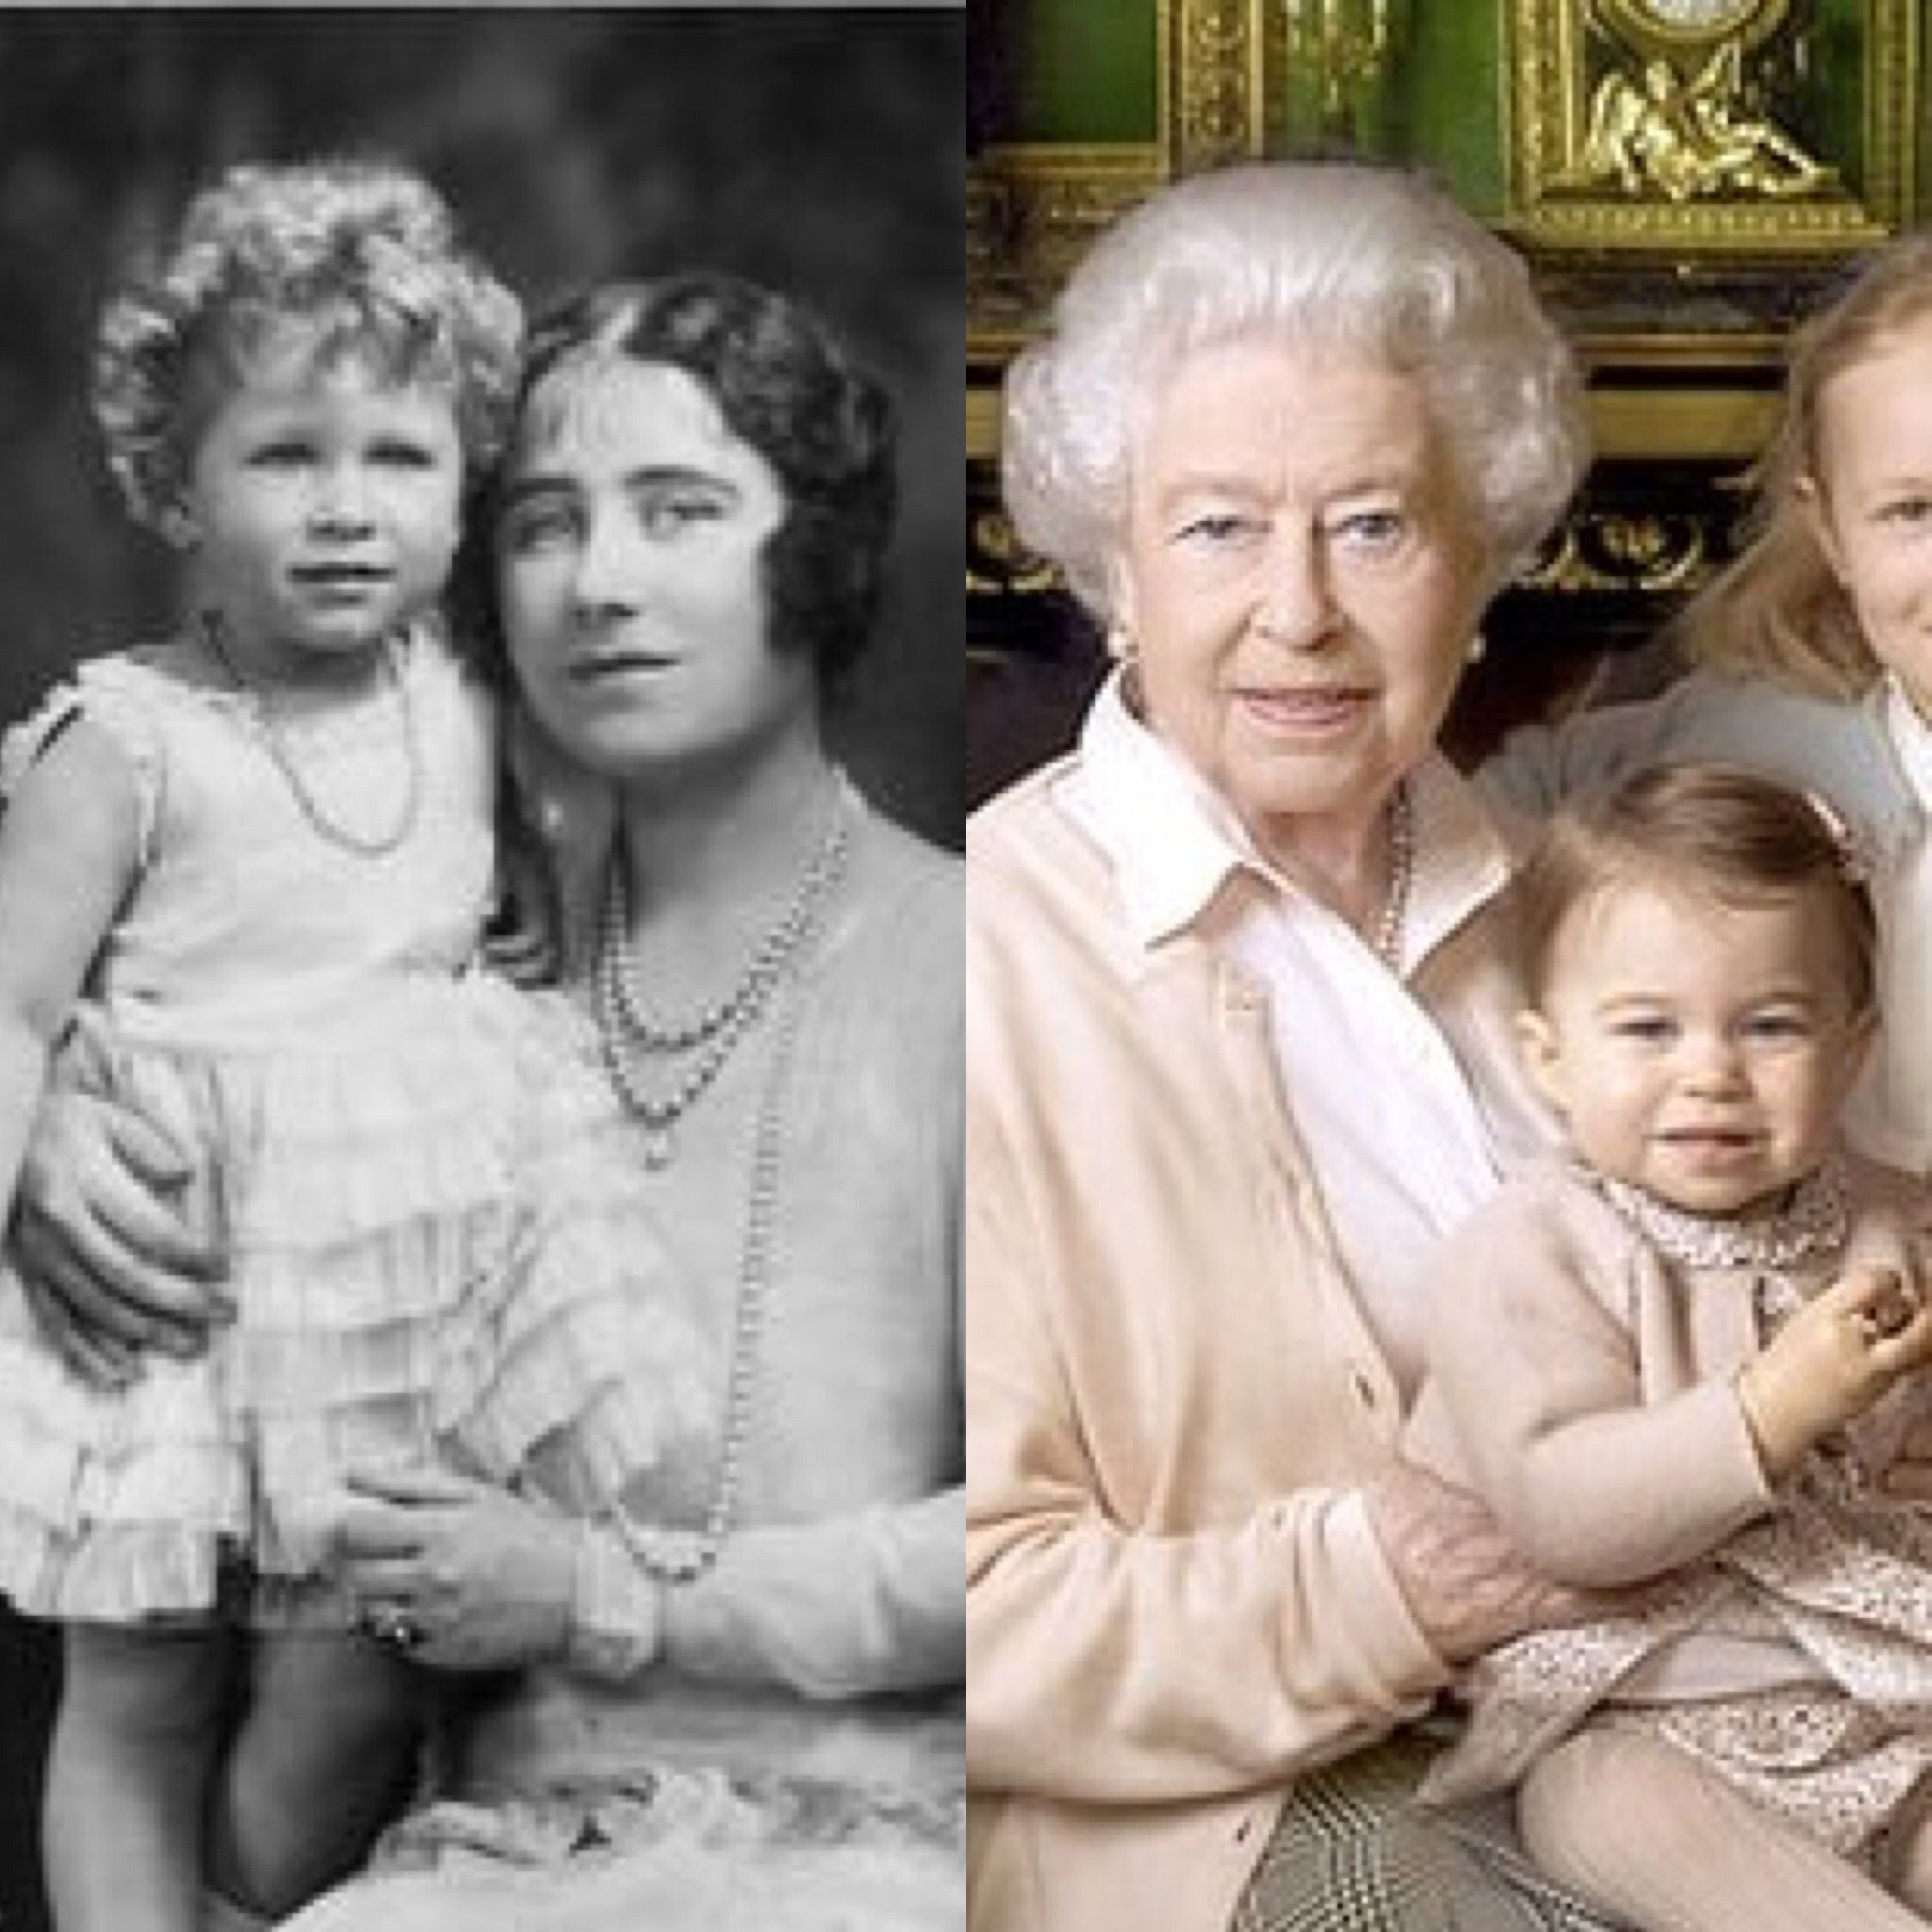 Queen Elizabeth Ll With Mum And Qell Princess Charlotte Look Alike As Children